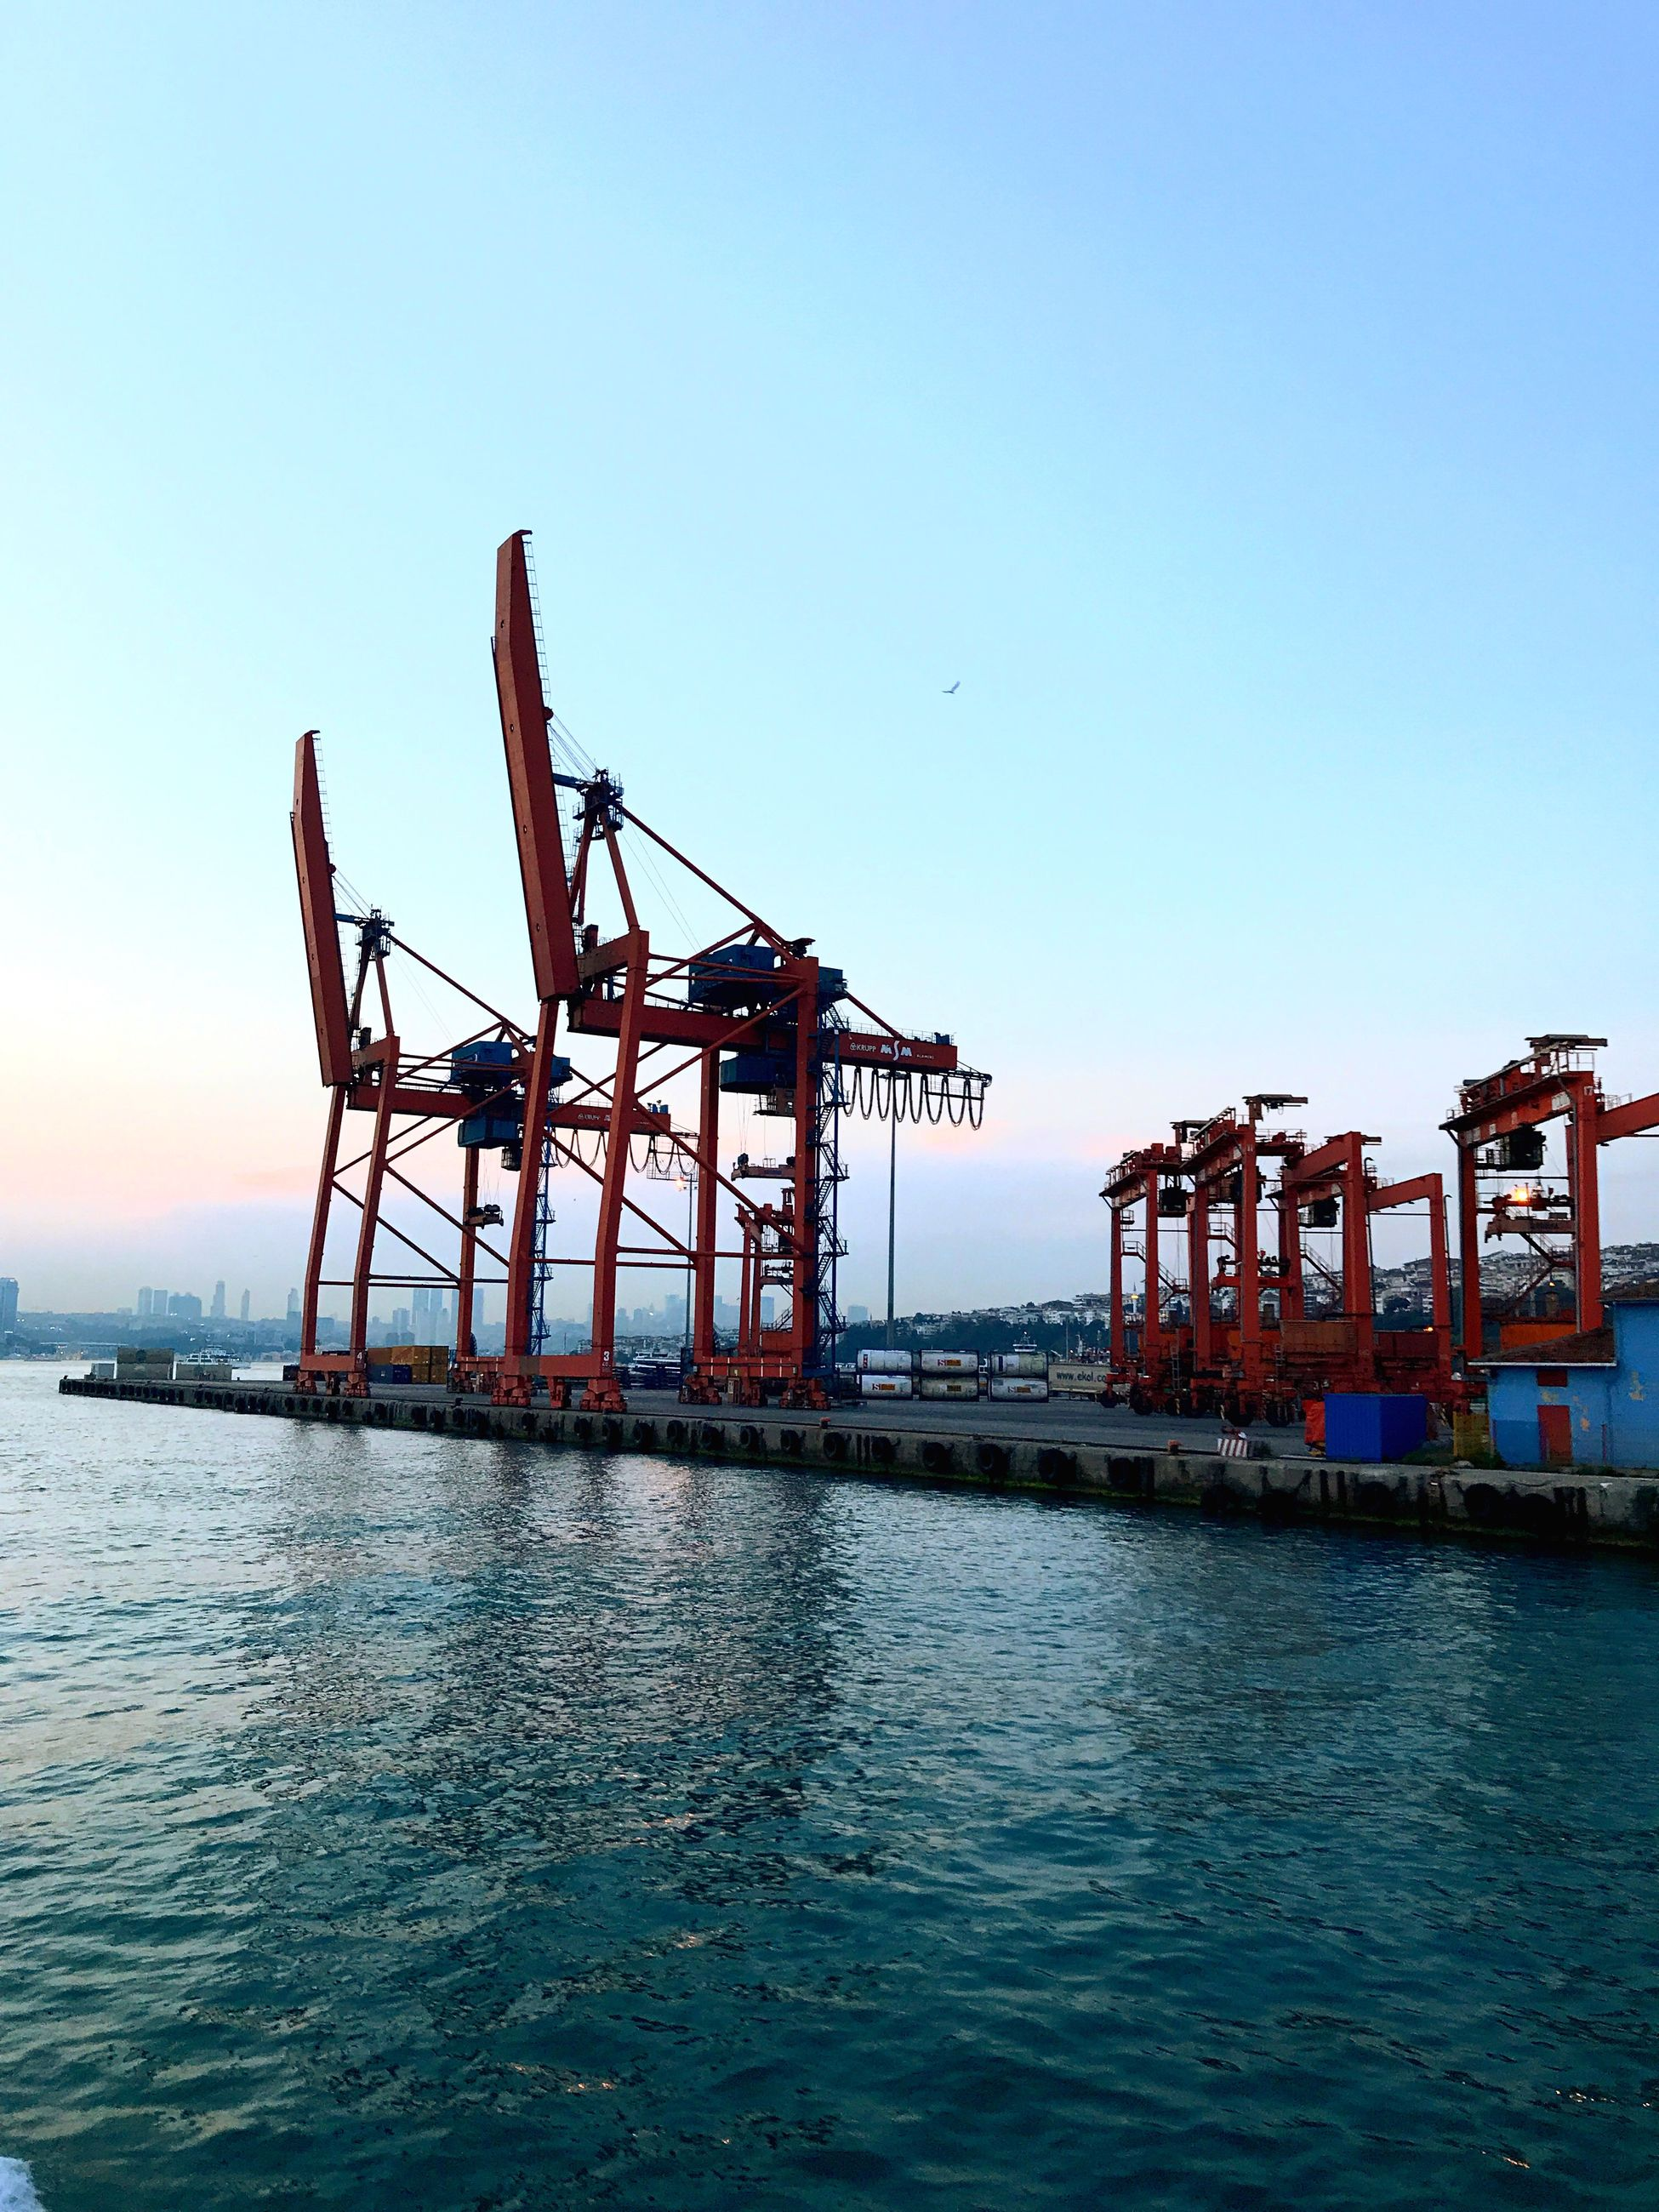 waterfront, water, clear sky, sea, crane - construction machinery, industry, outdoors, sky, freight transportation, day, transportation, commercial dock, blue, built structure, nature, nautical vessel, no people, scenics, harbor, architecture, beauty in nature, offshore platform, drilling rig, oil pump